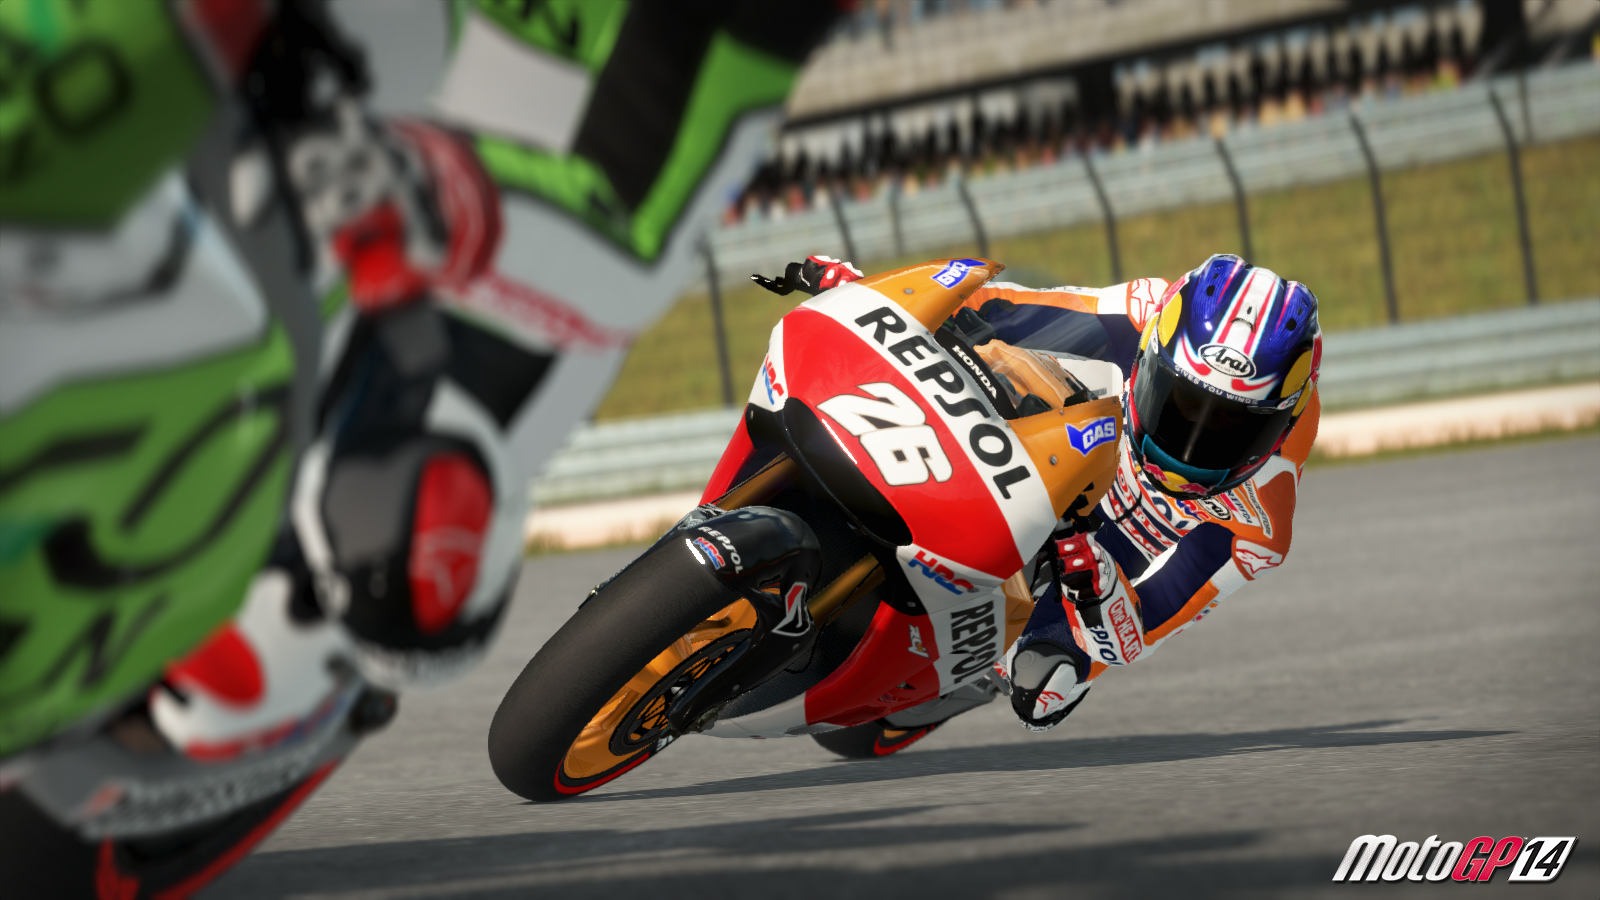 MotoGP14 screenshot